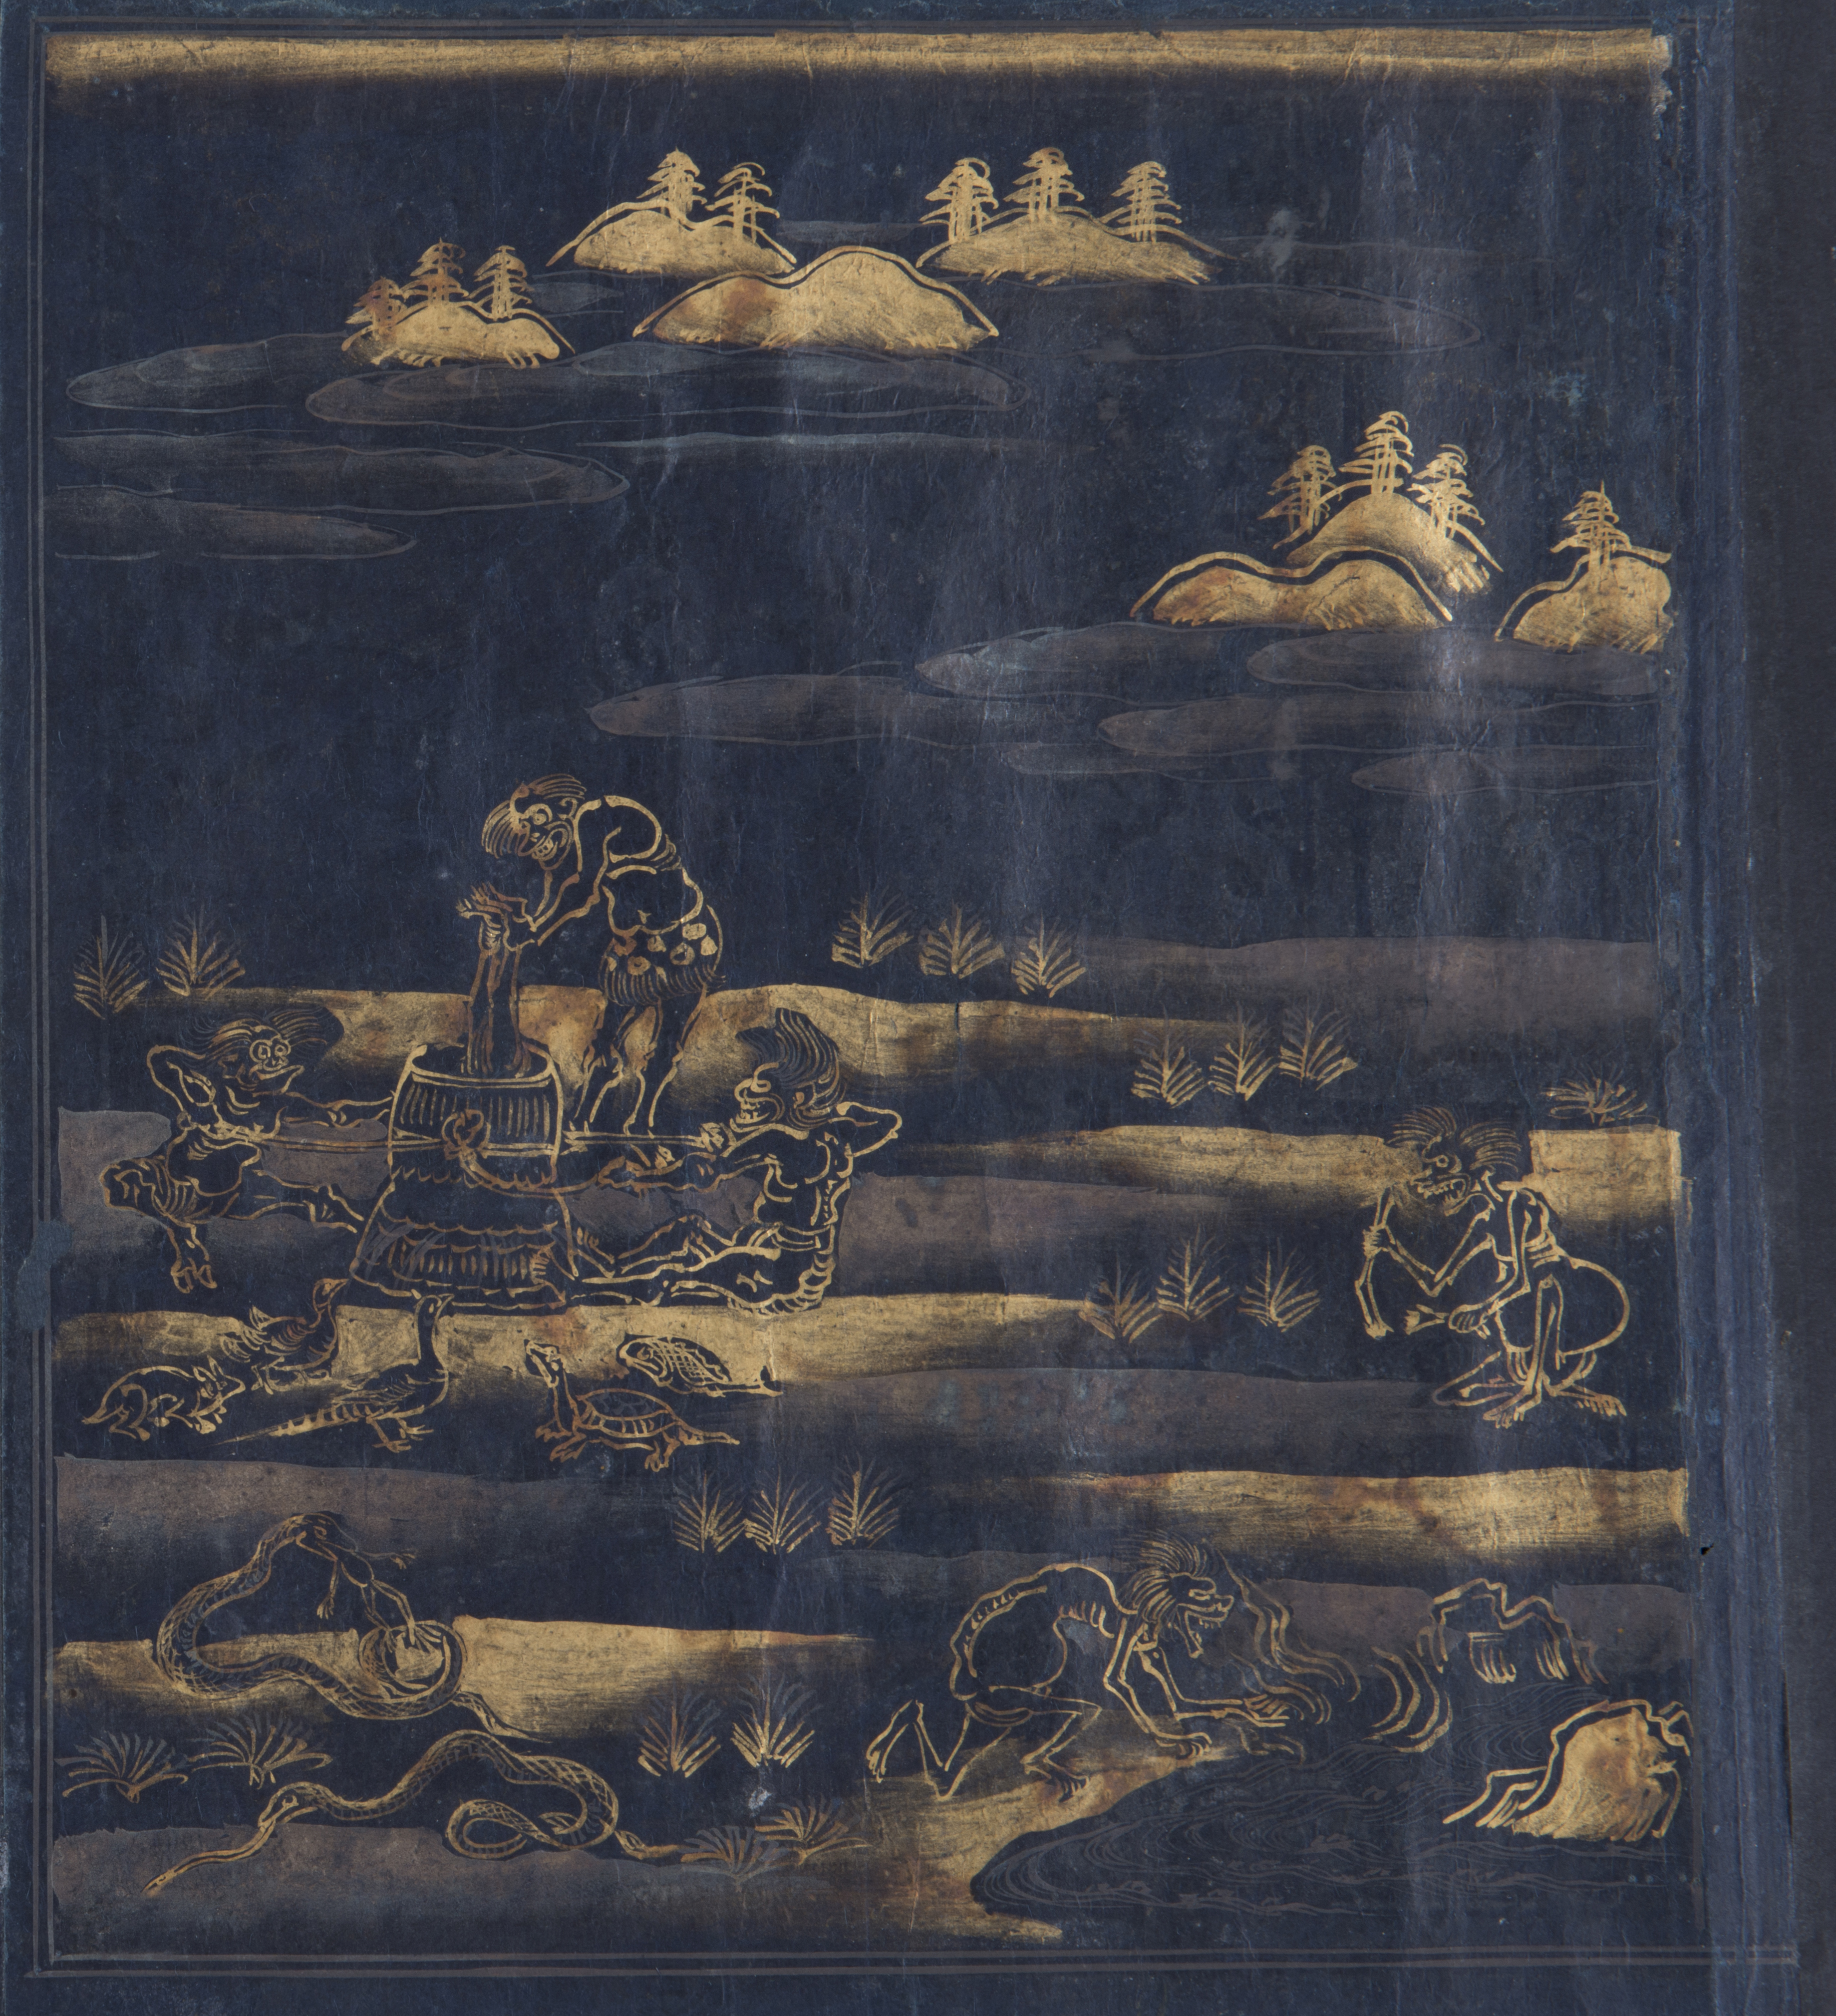 The Political Culture of a Scroll: Jien's Appropriation of Kitano Tenjin